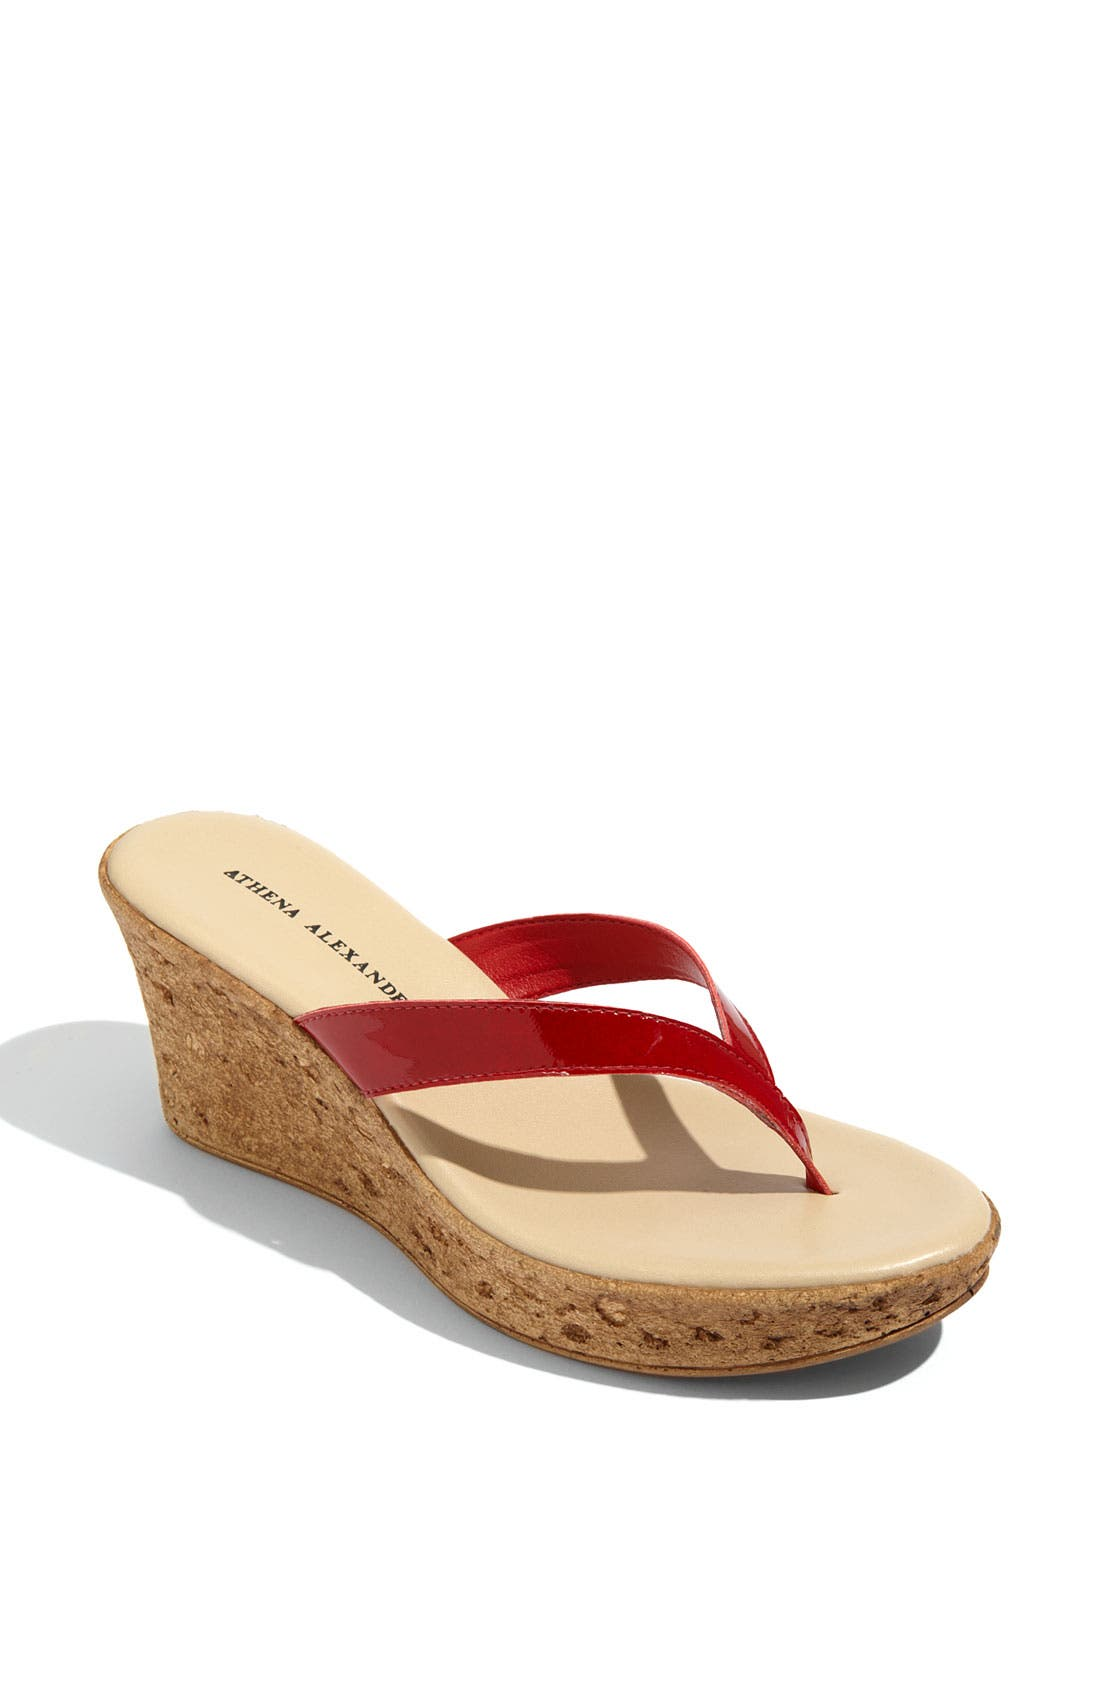 Alternate Image 1 Selected - Athena Alexander 'Aloha' Sandal